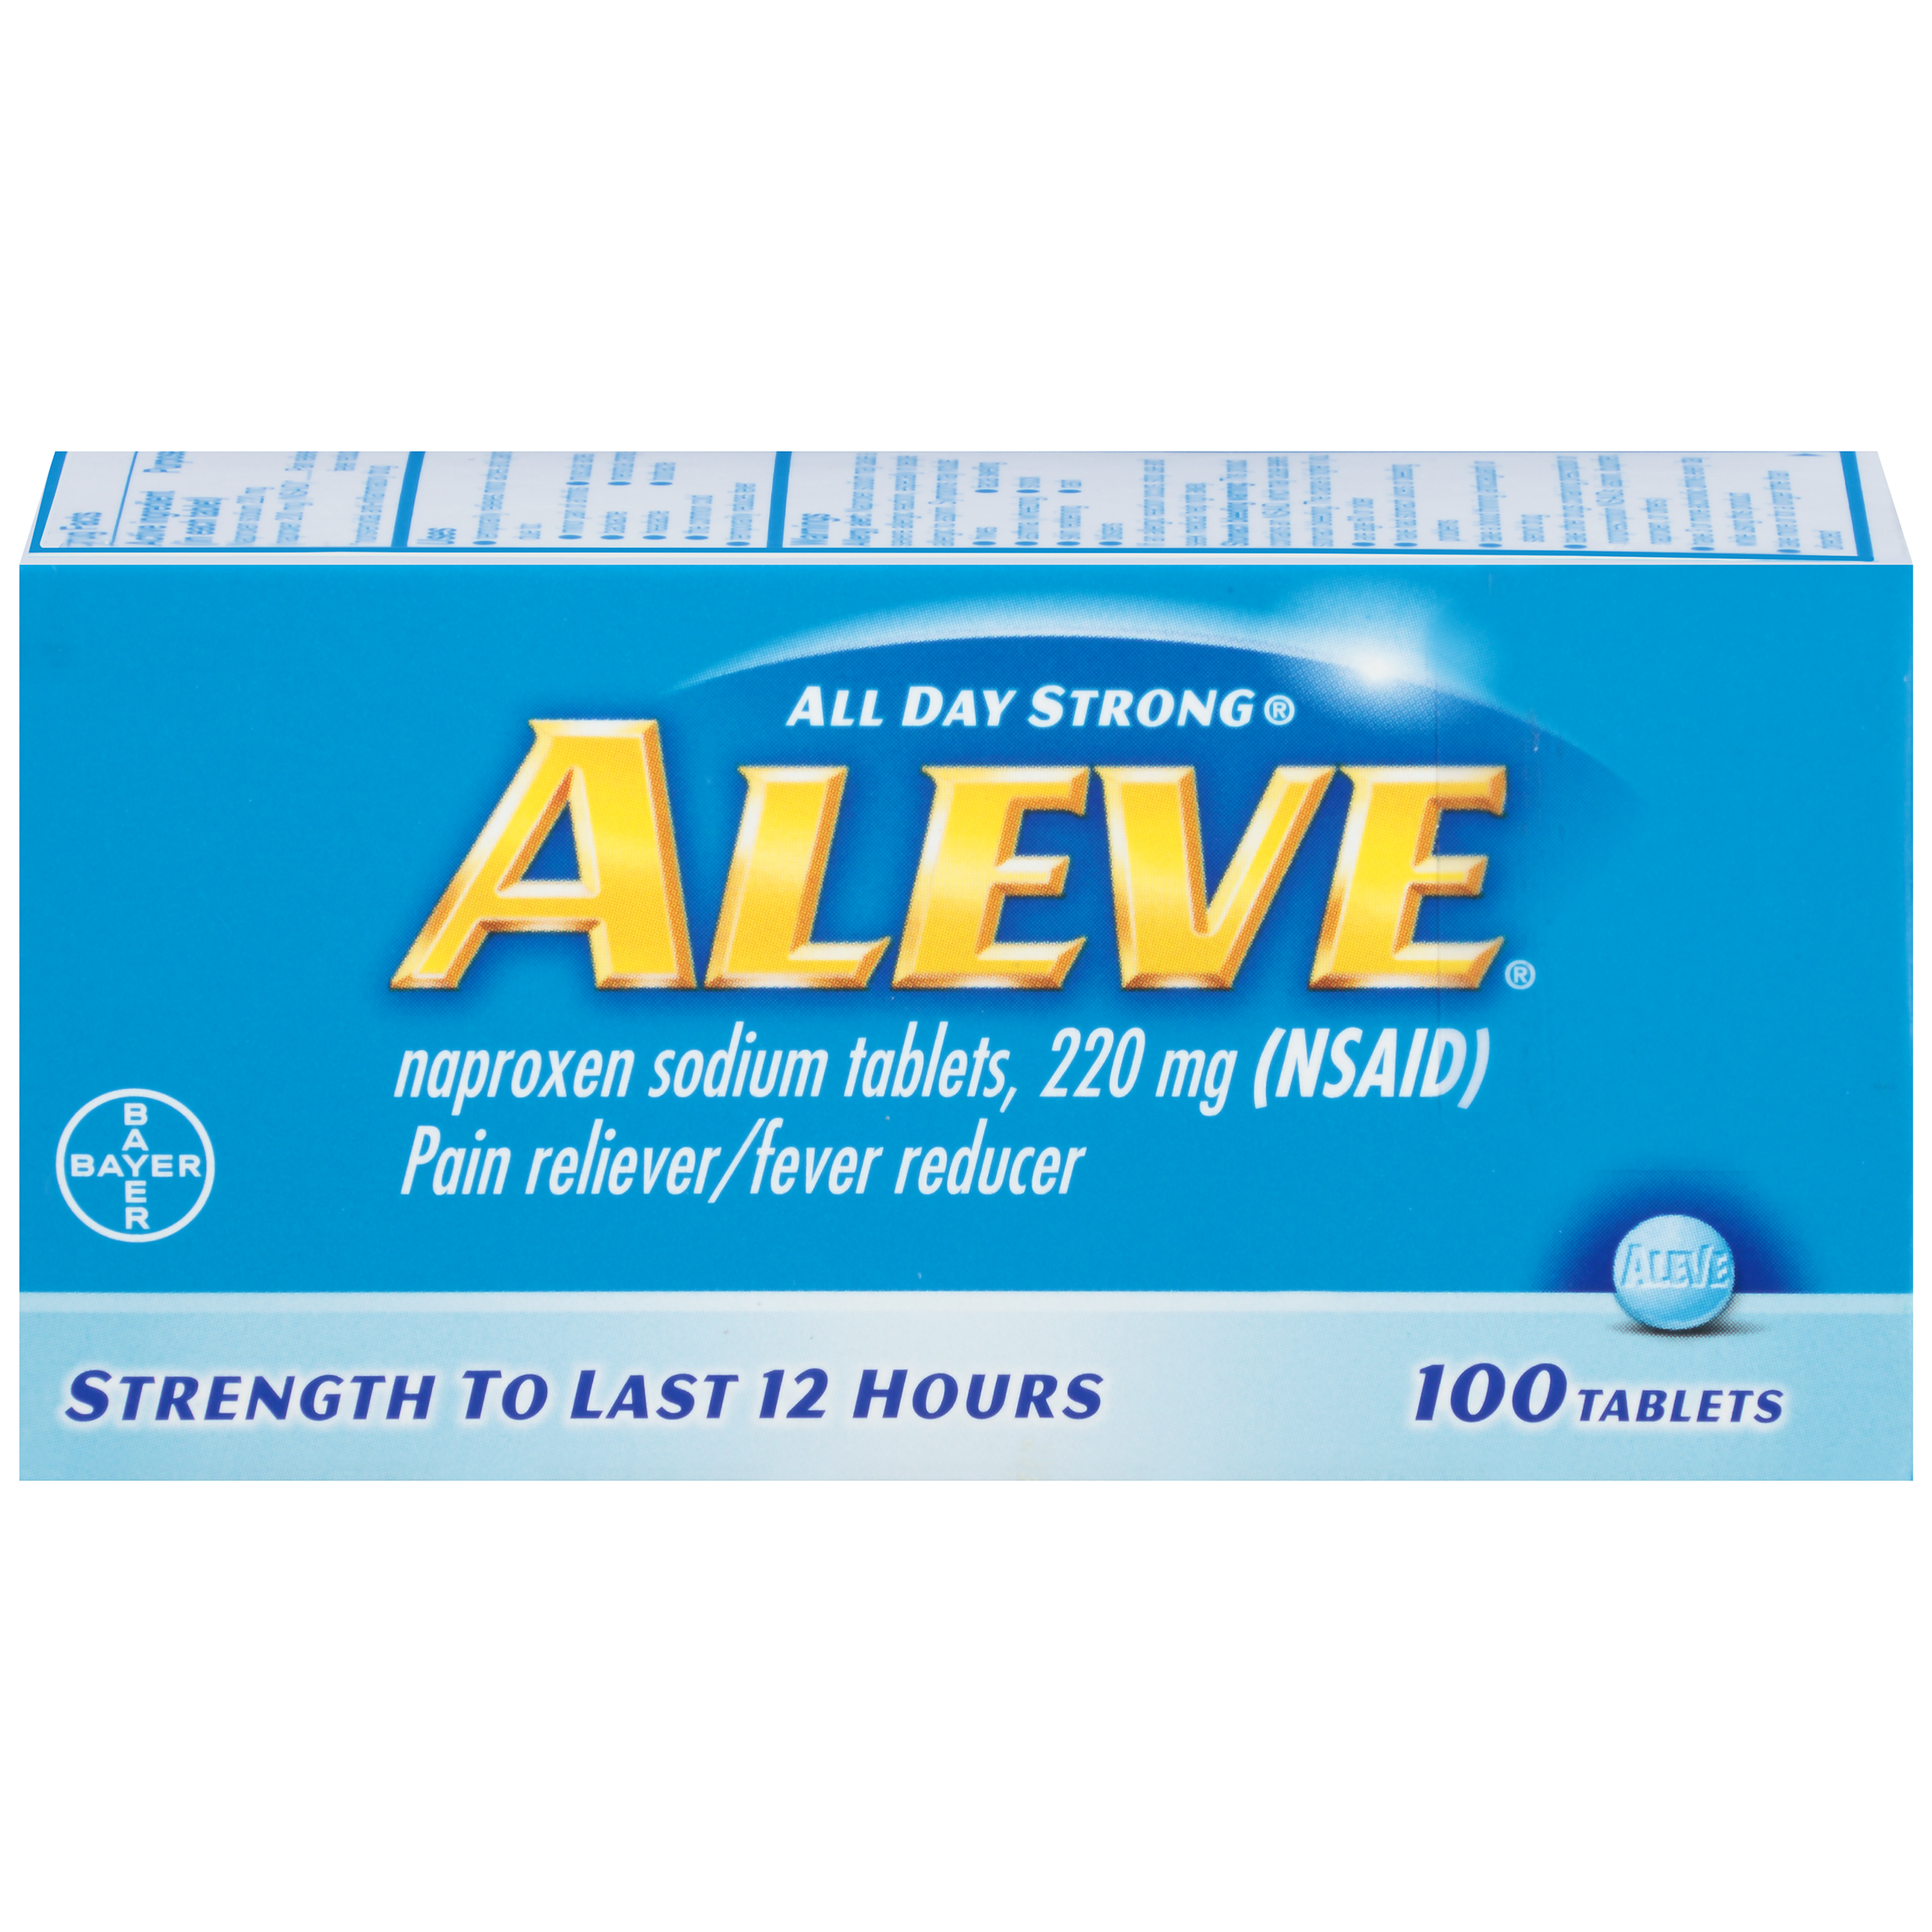 Aleve Pain Reliever/Fever Reducer Naproxen Sodium Tablets, 220 mg, 24 Ct